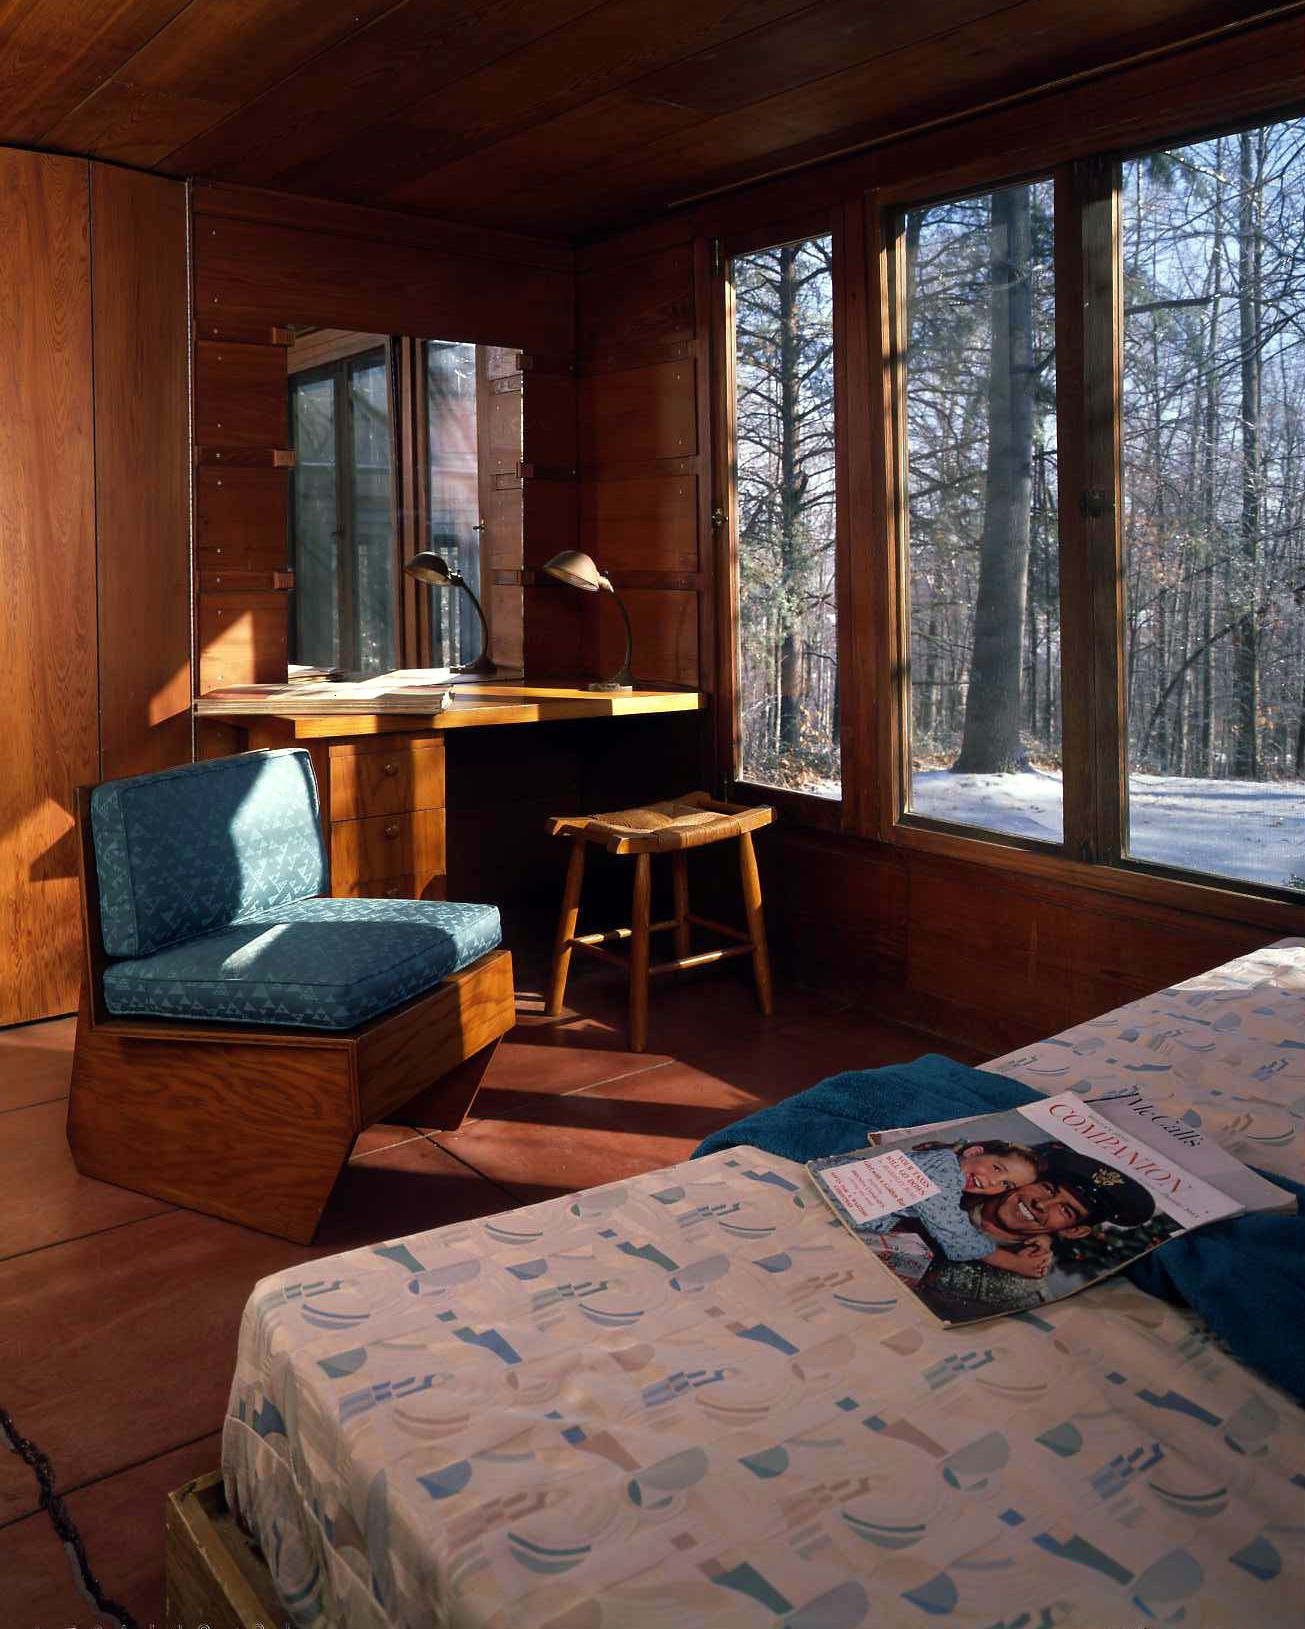 Pope-Leighey House Tour: A Frank Lloyd Wright Gem In